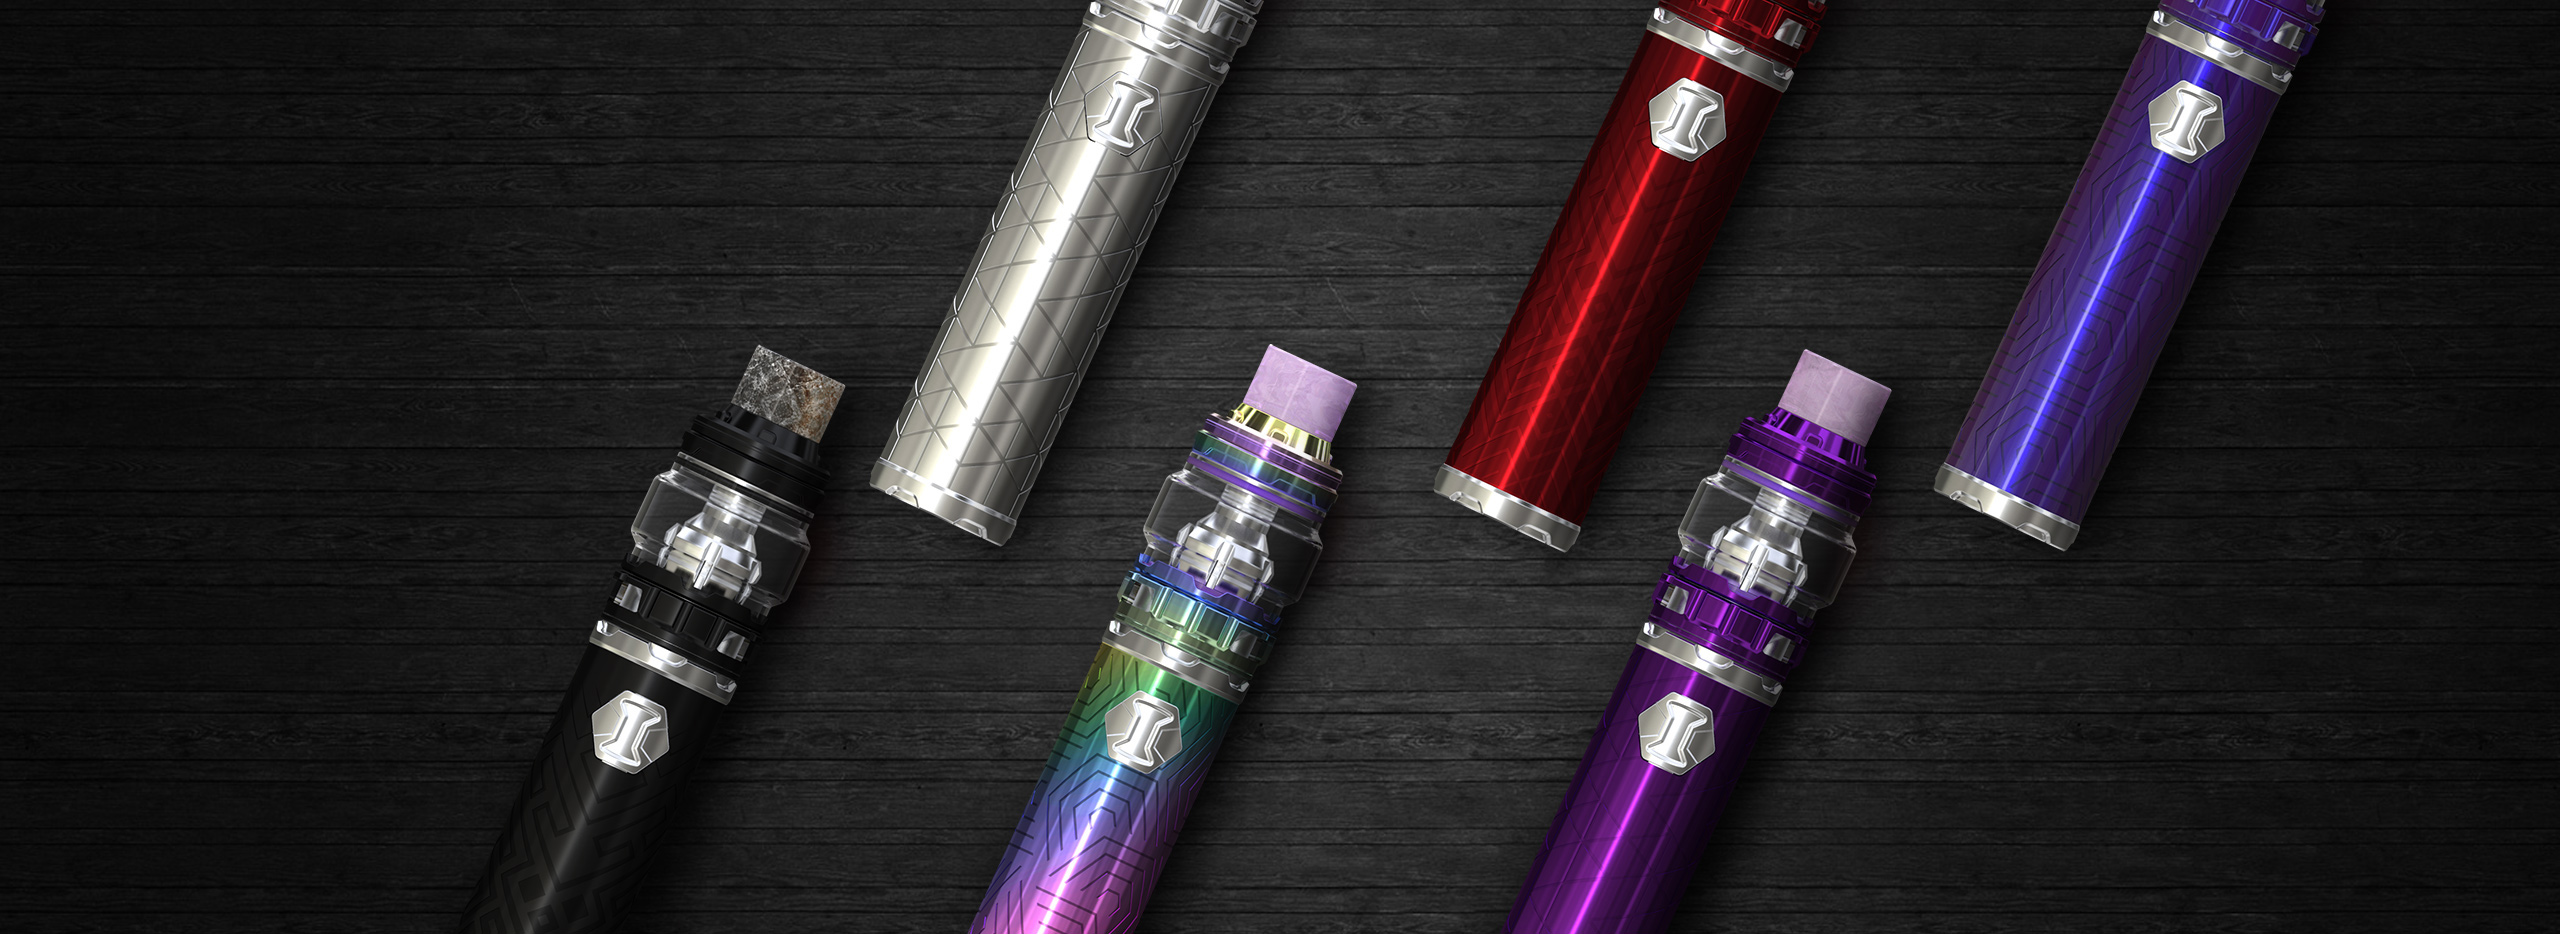 Eleaf iJust 3 Kit Preview